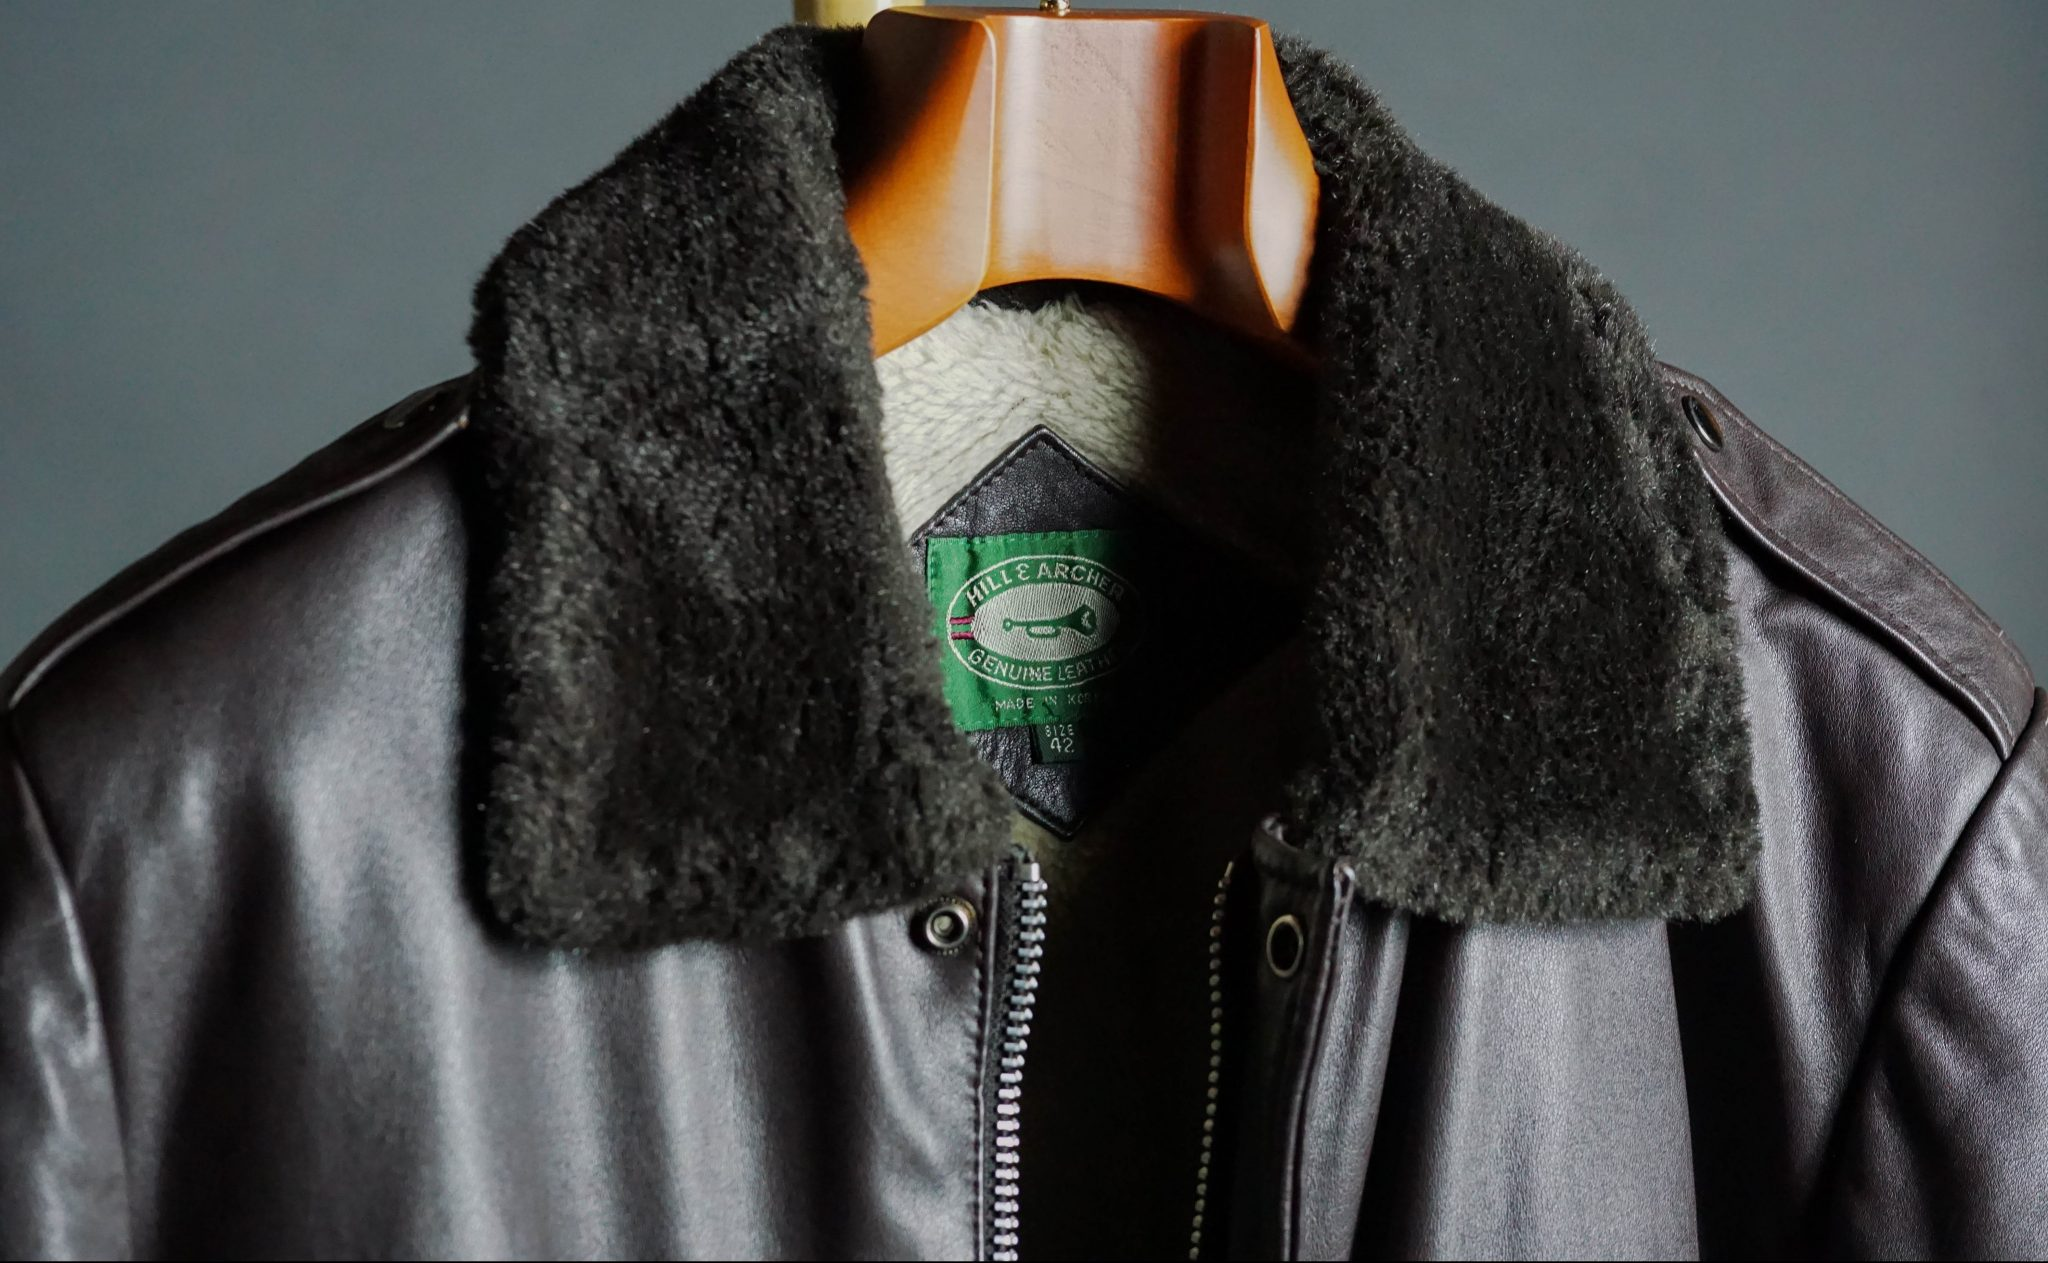 Butler-Luxury-Hangers-Review-vintage-brown-leather-jacket-shearling